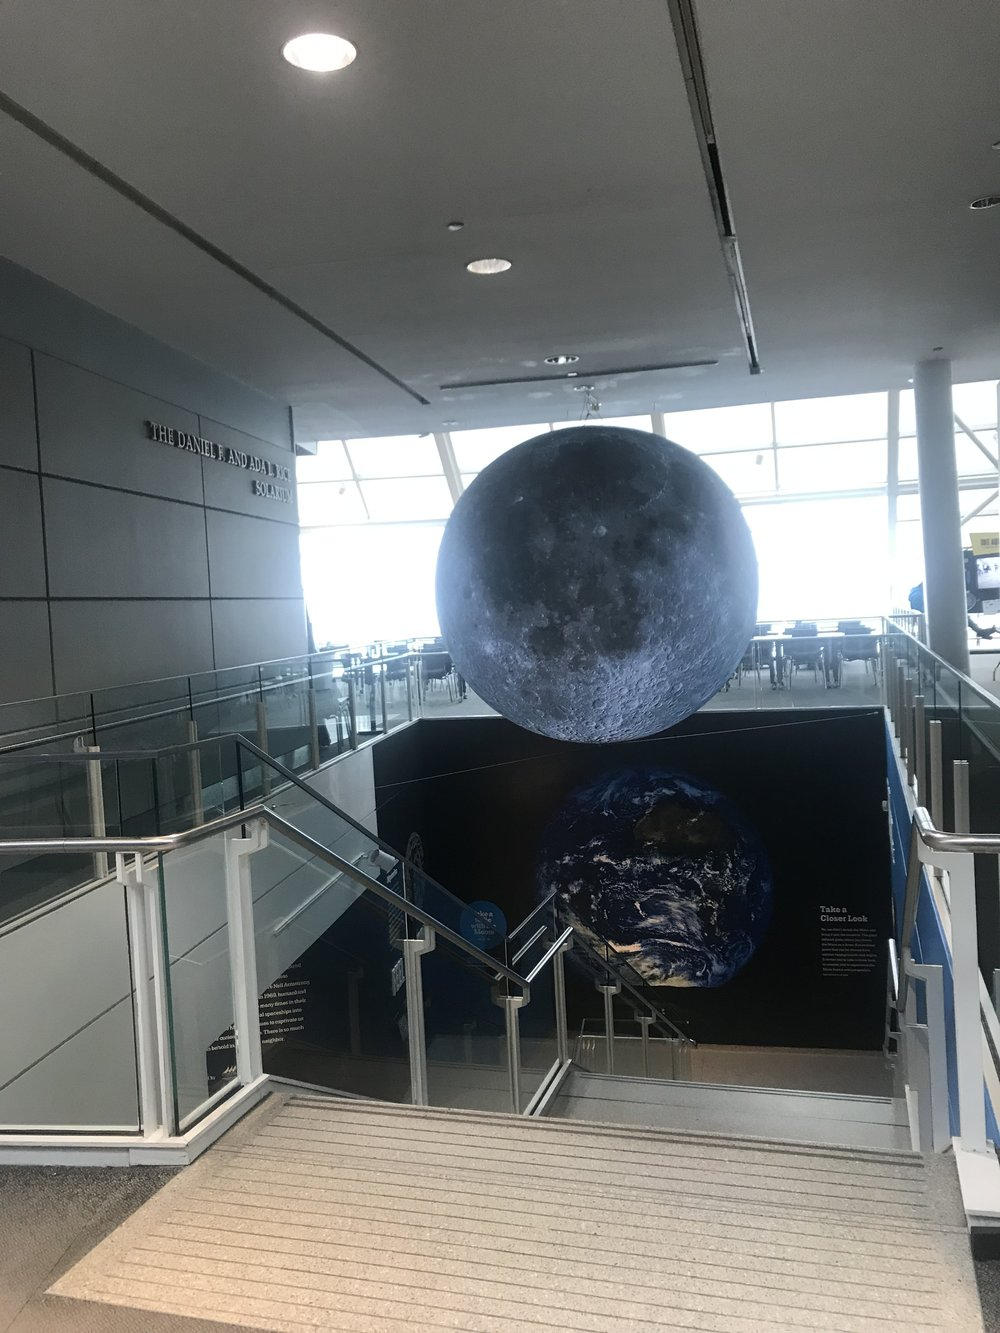 A detailed look of the moon, as we see it from Earth on Adler Planetarium's new moon globe